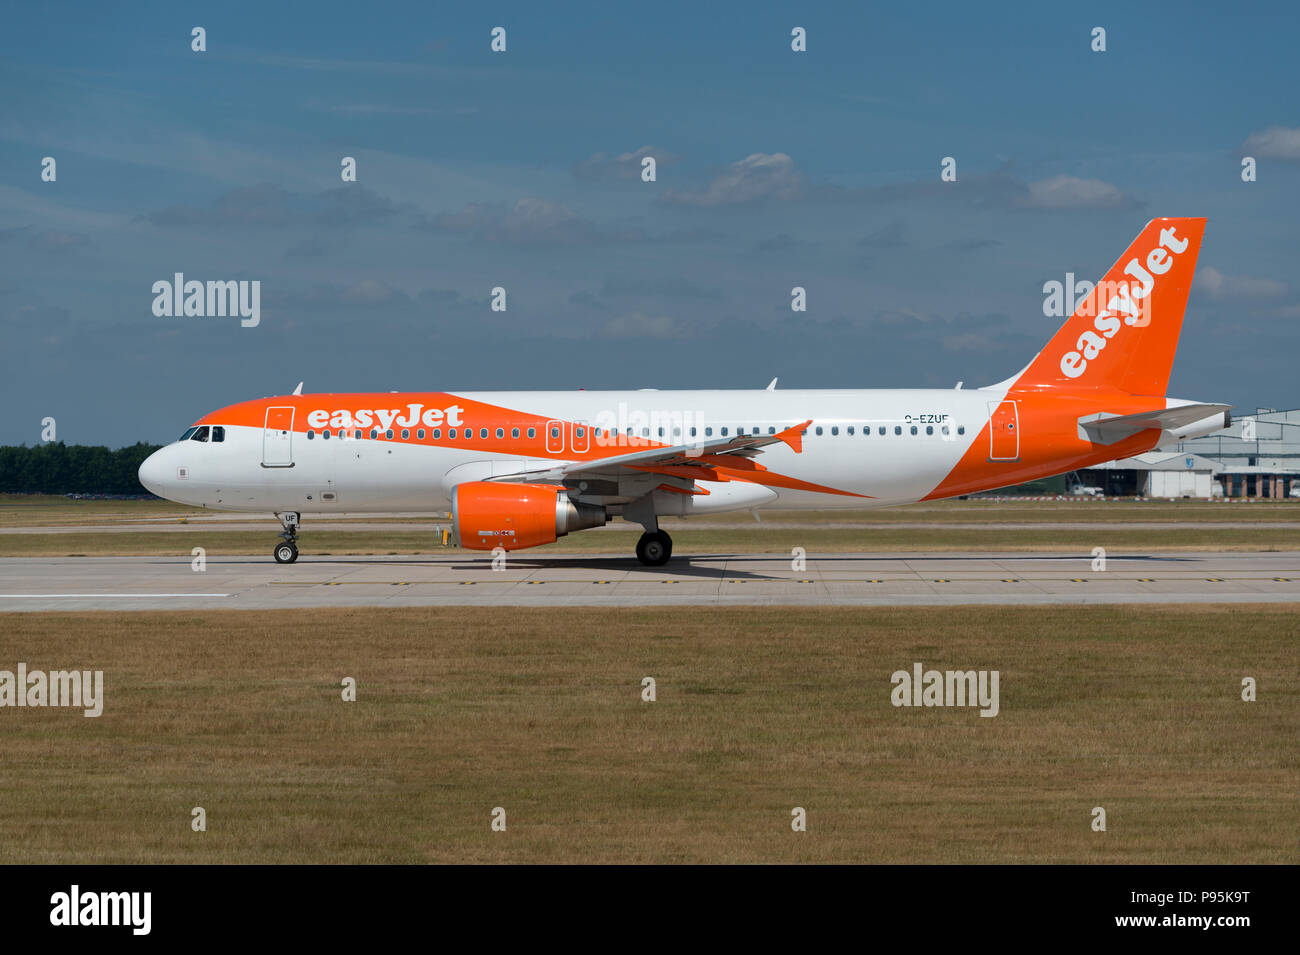 An Easyjet Airbus A319 sits on the runway at Manchester Airport as it prepares to take-off. - Stock Image